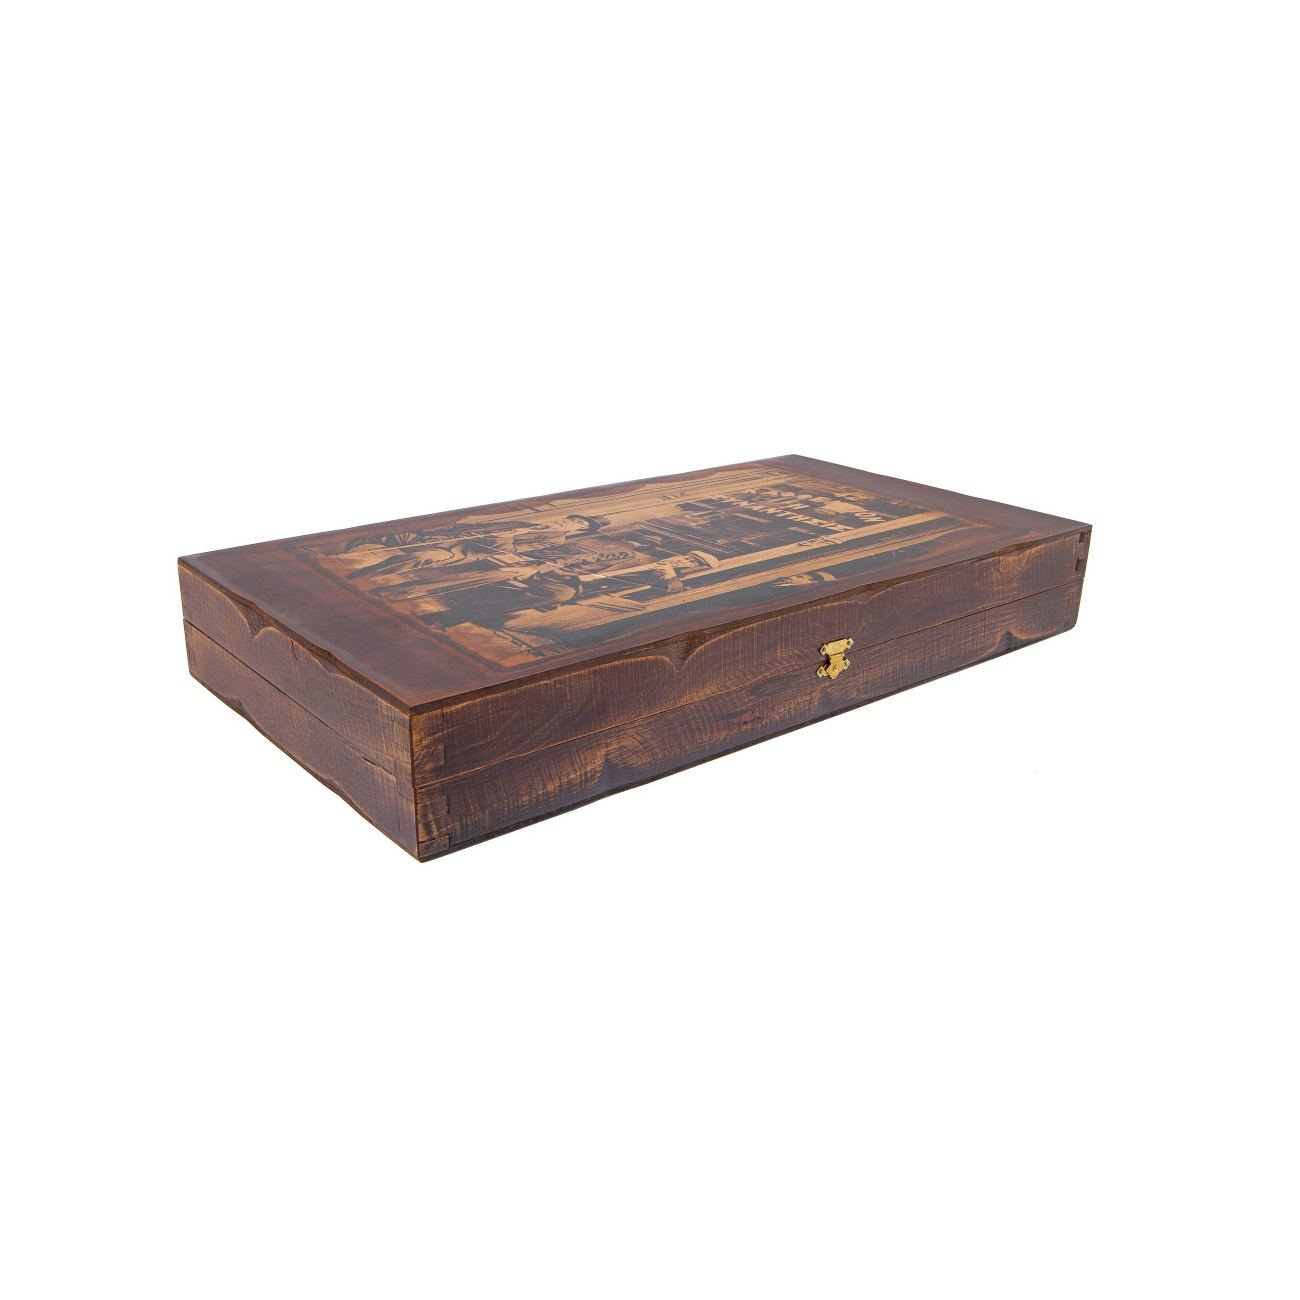 Handmade Wooden Backgammon Game Set The Coffeehouse Picture Inset Small 2